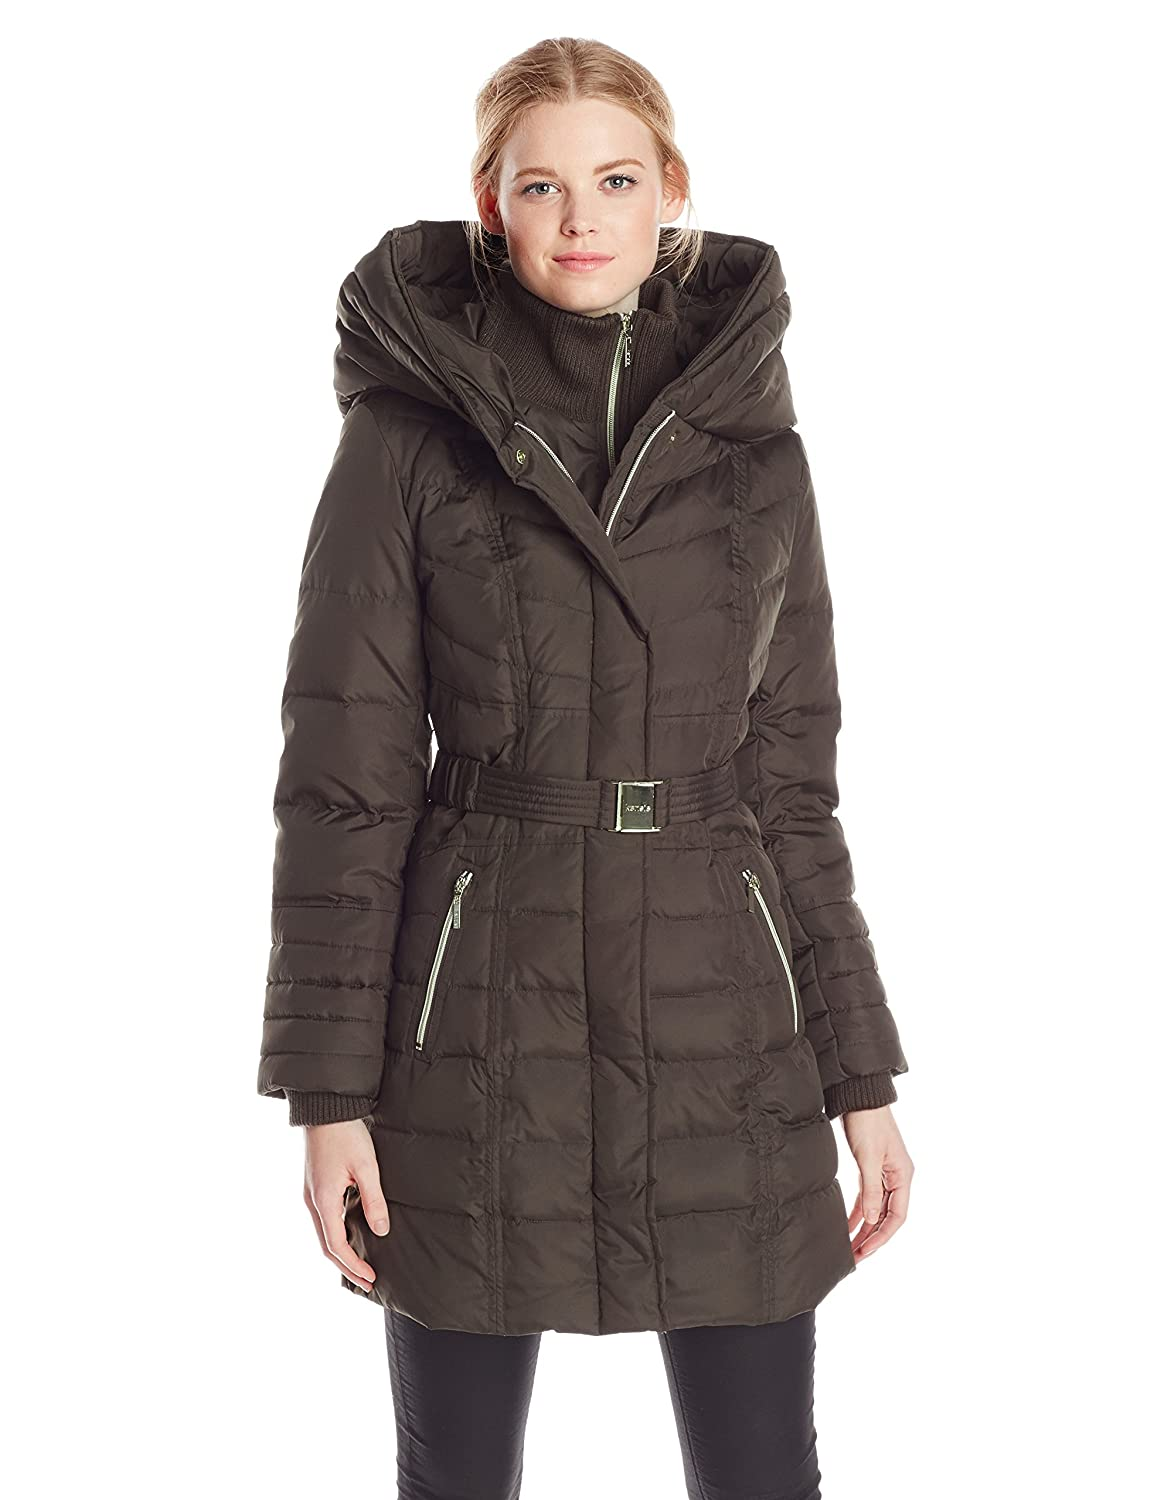 Amazon.com: Kensie Women's Down Coat with Hood: Clothing